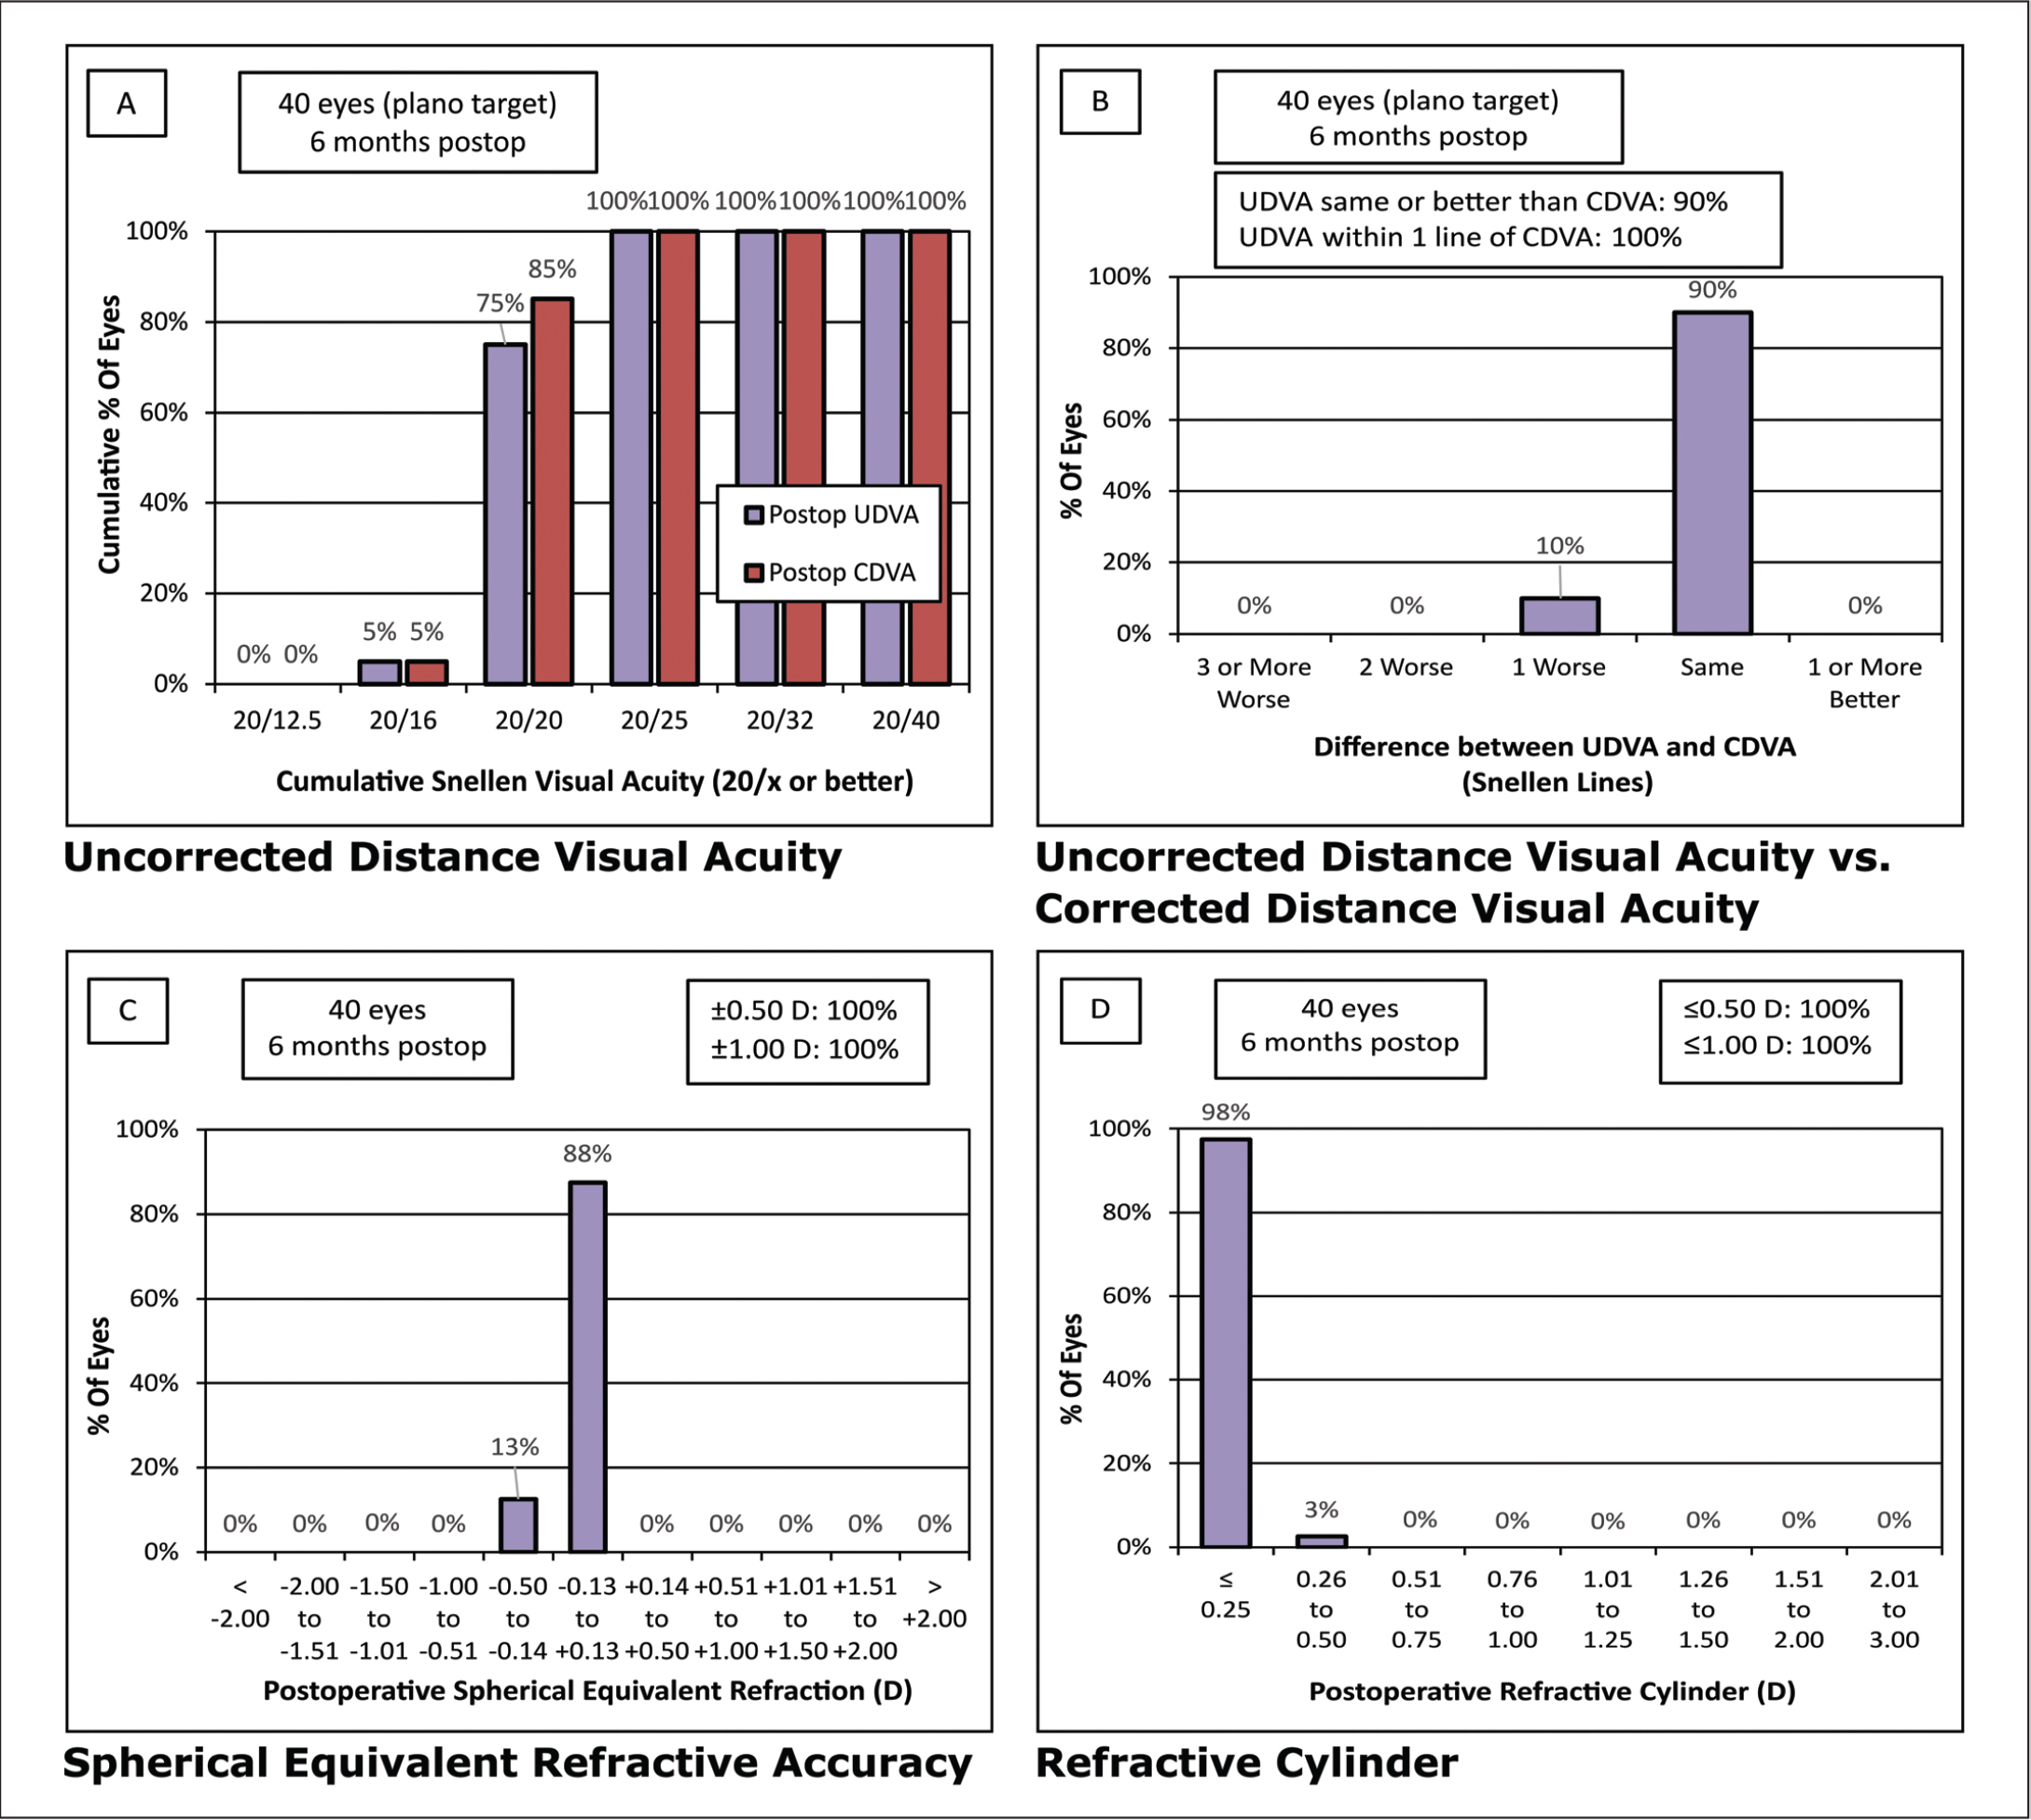 Comparison of (A) monocular uncorrected distance visual acuity (UDVA) versus corrected distance visual acuity (CDVA) and (B–D) refractive outcomes after 6 months postoperatively. D = diopters